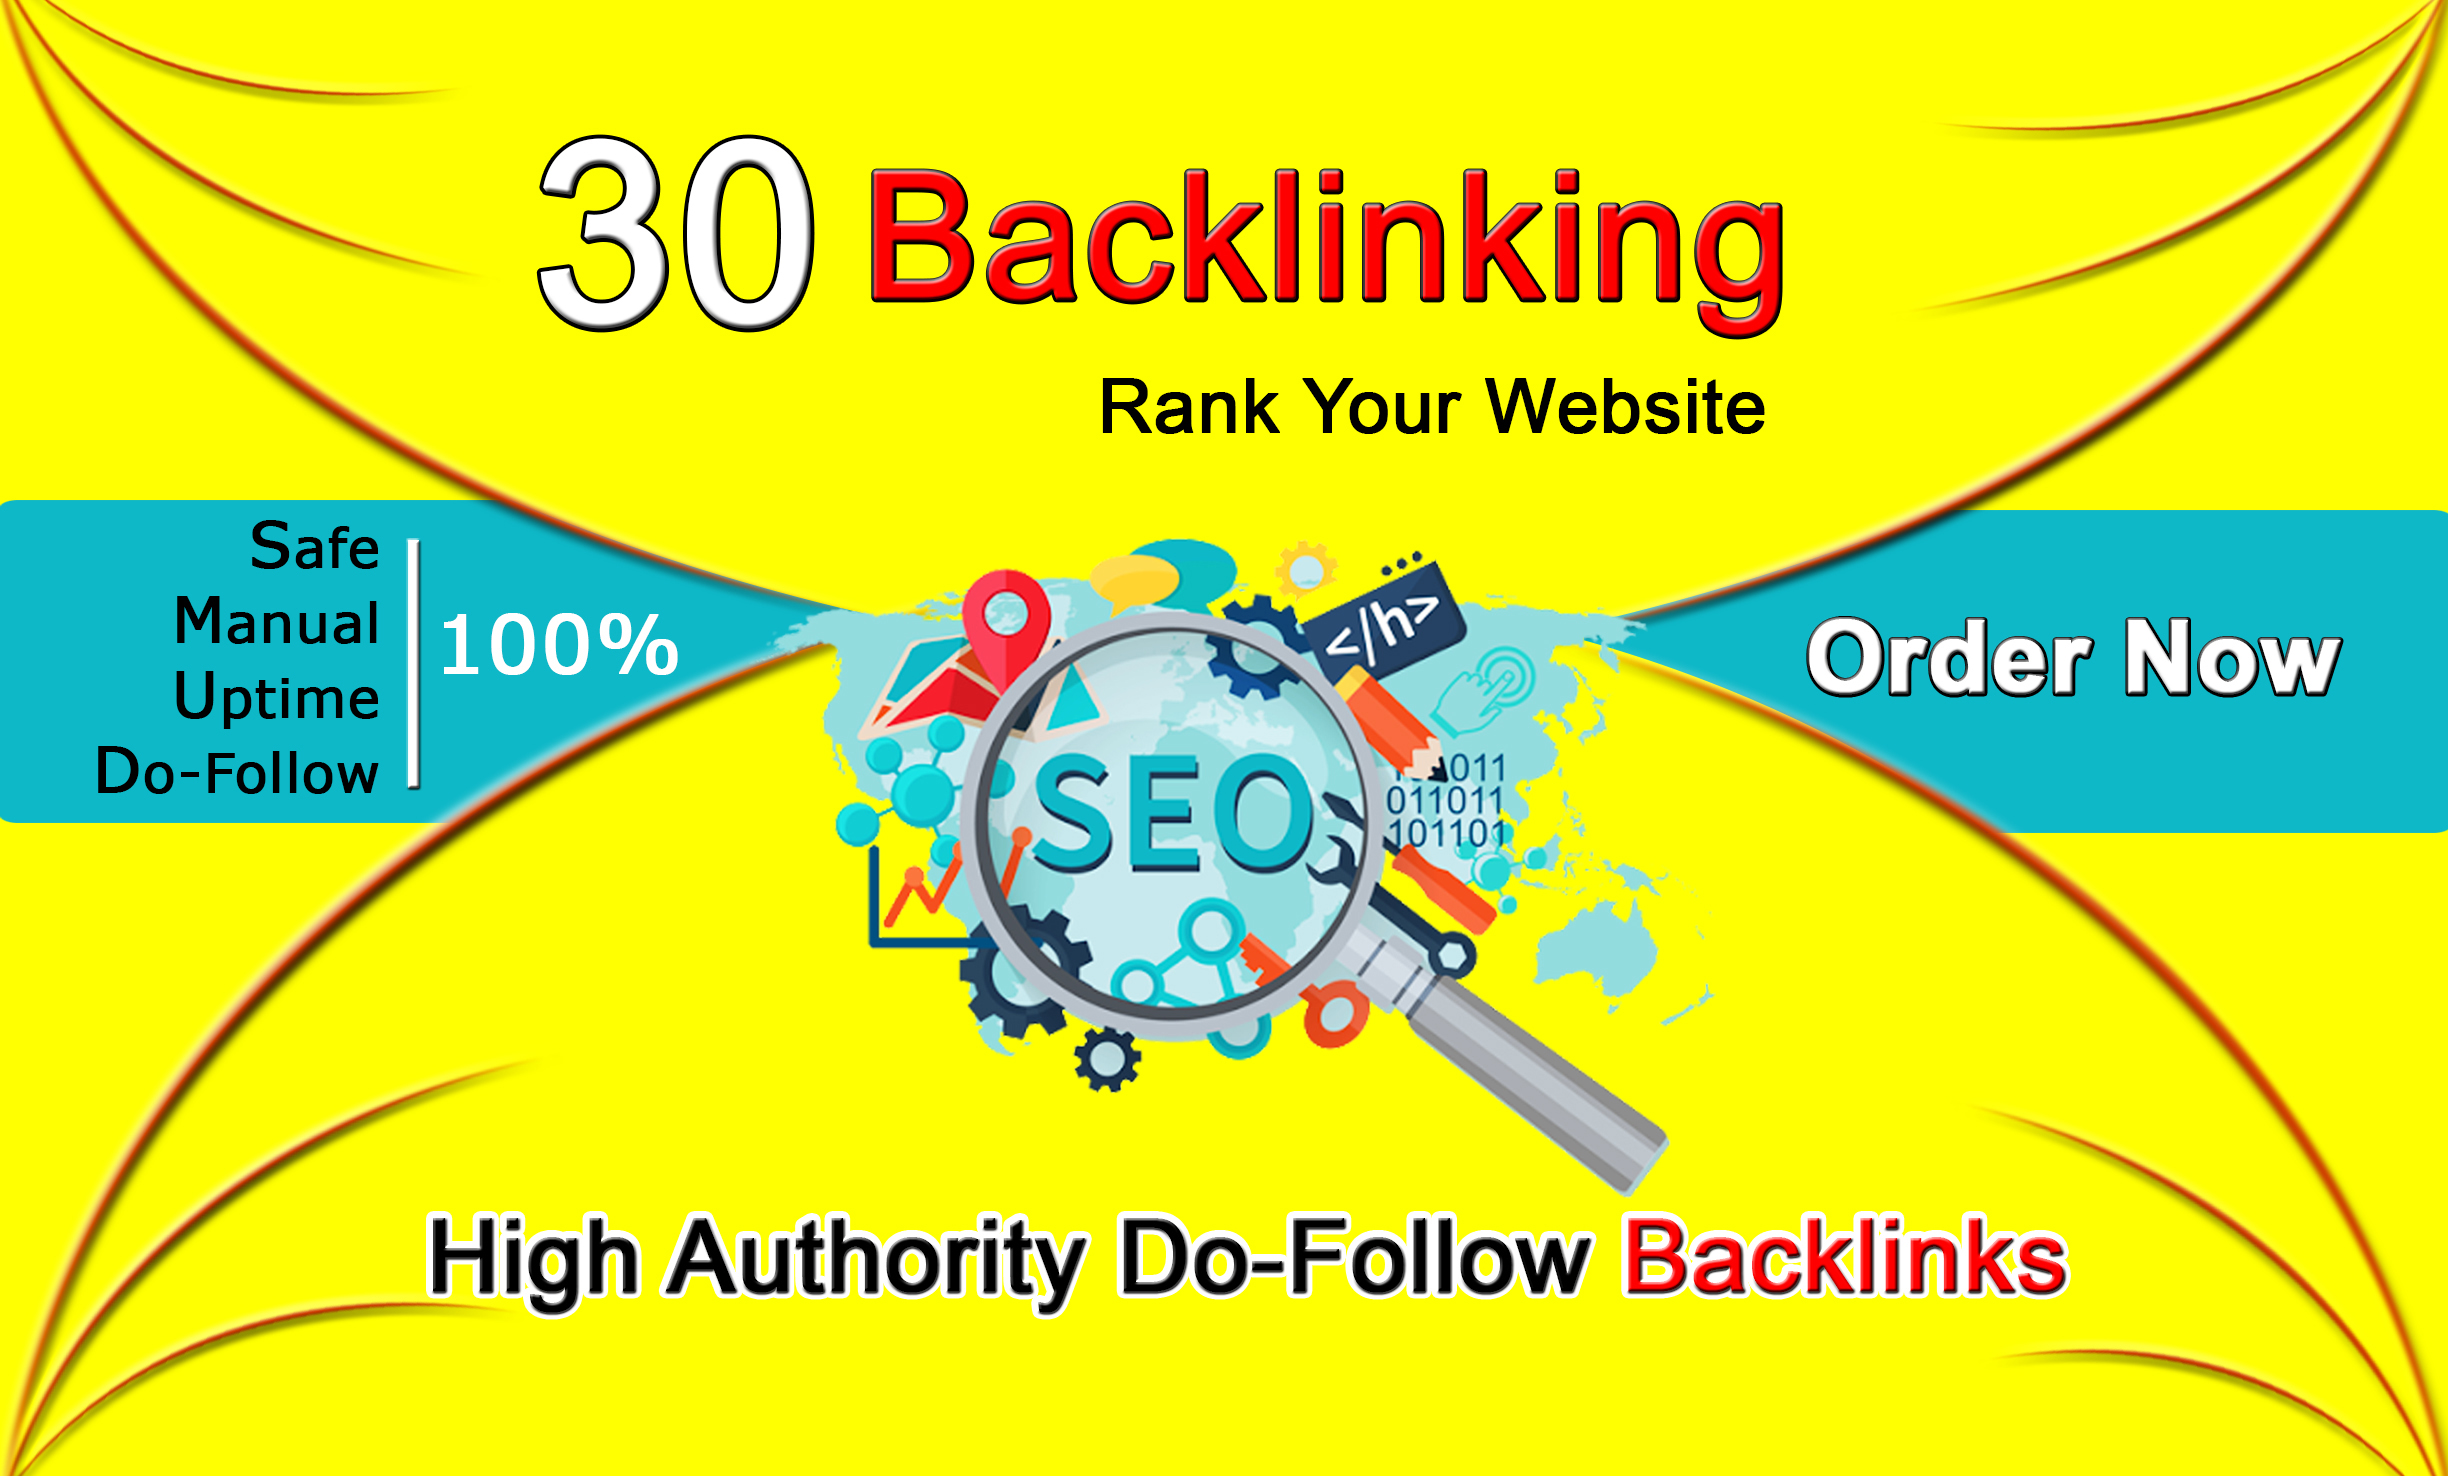 Manually provide 30 SEO high dadofollow white hat backlinks